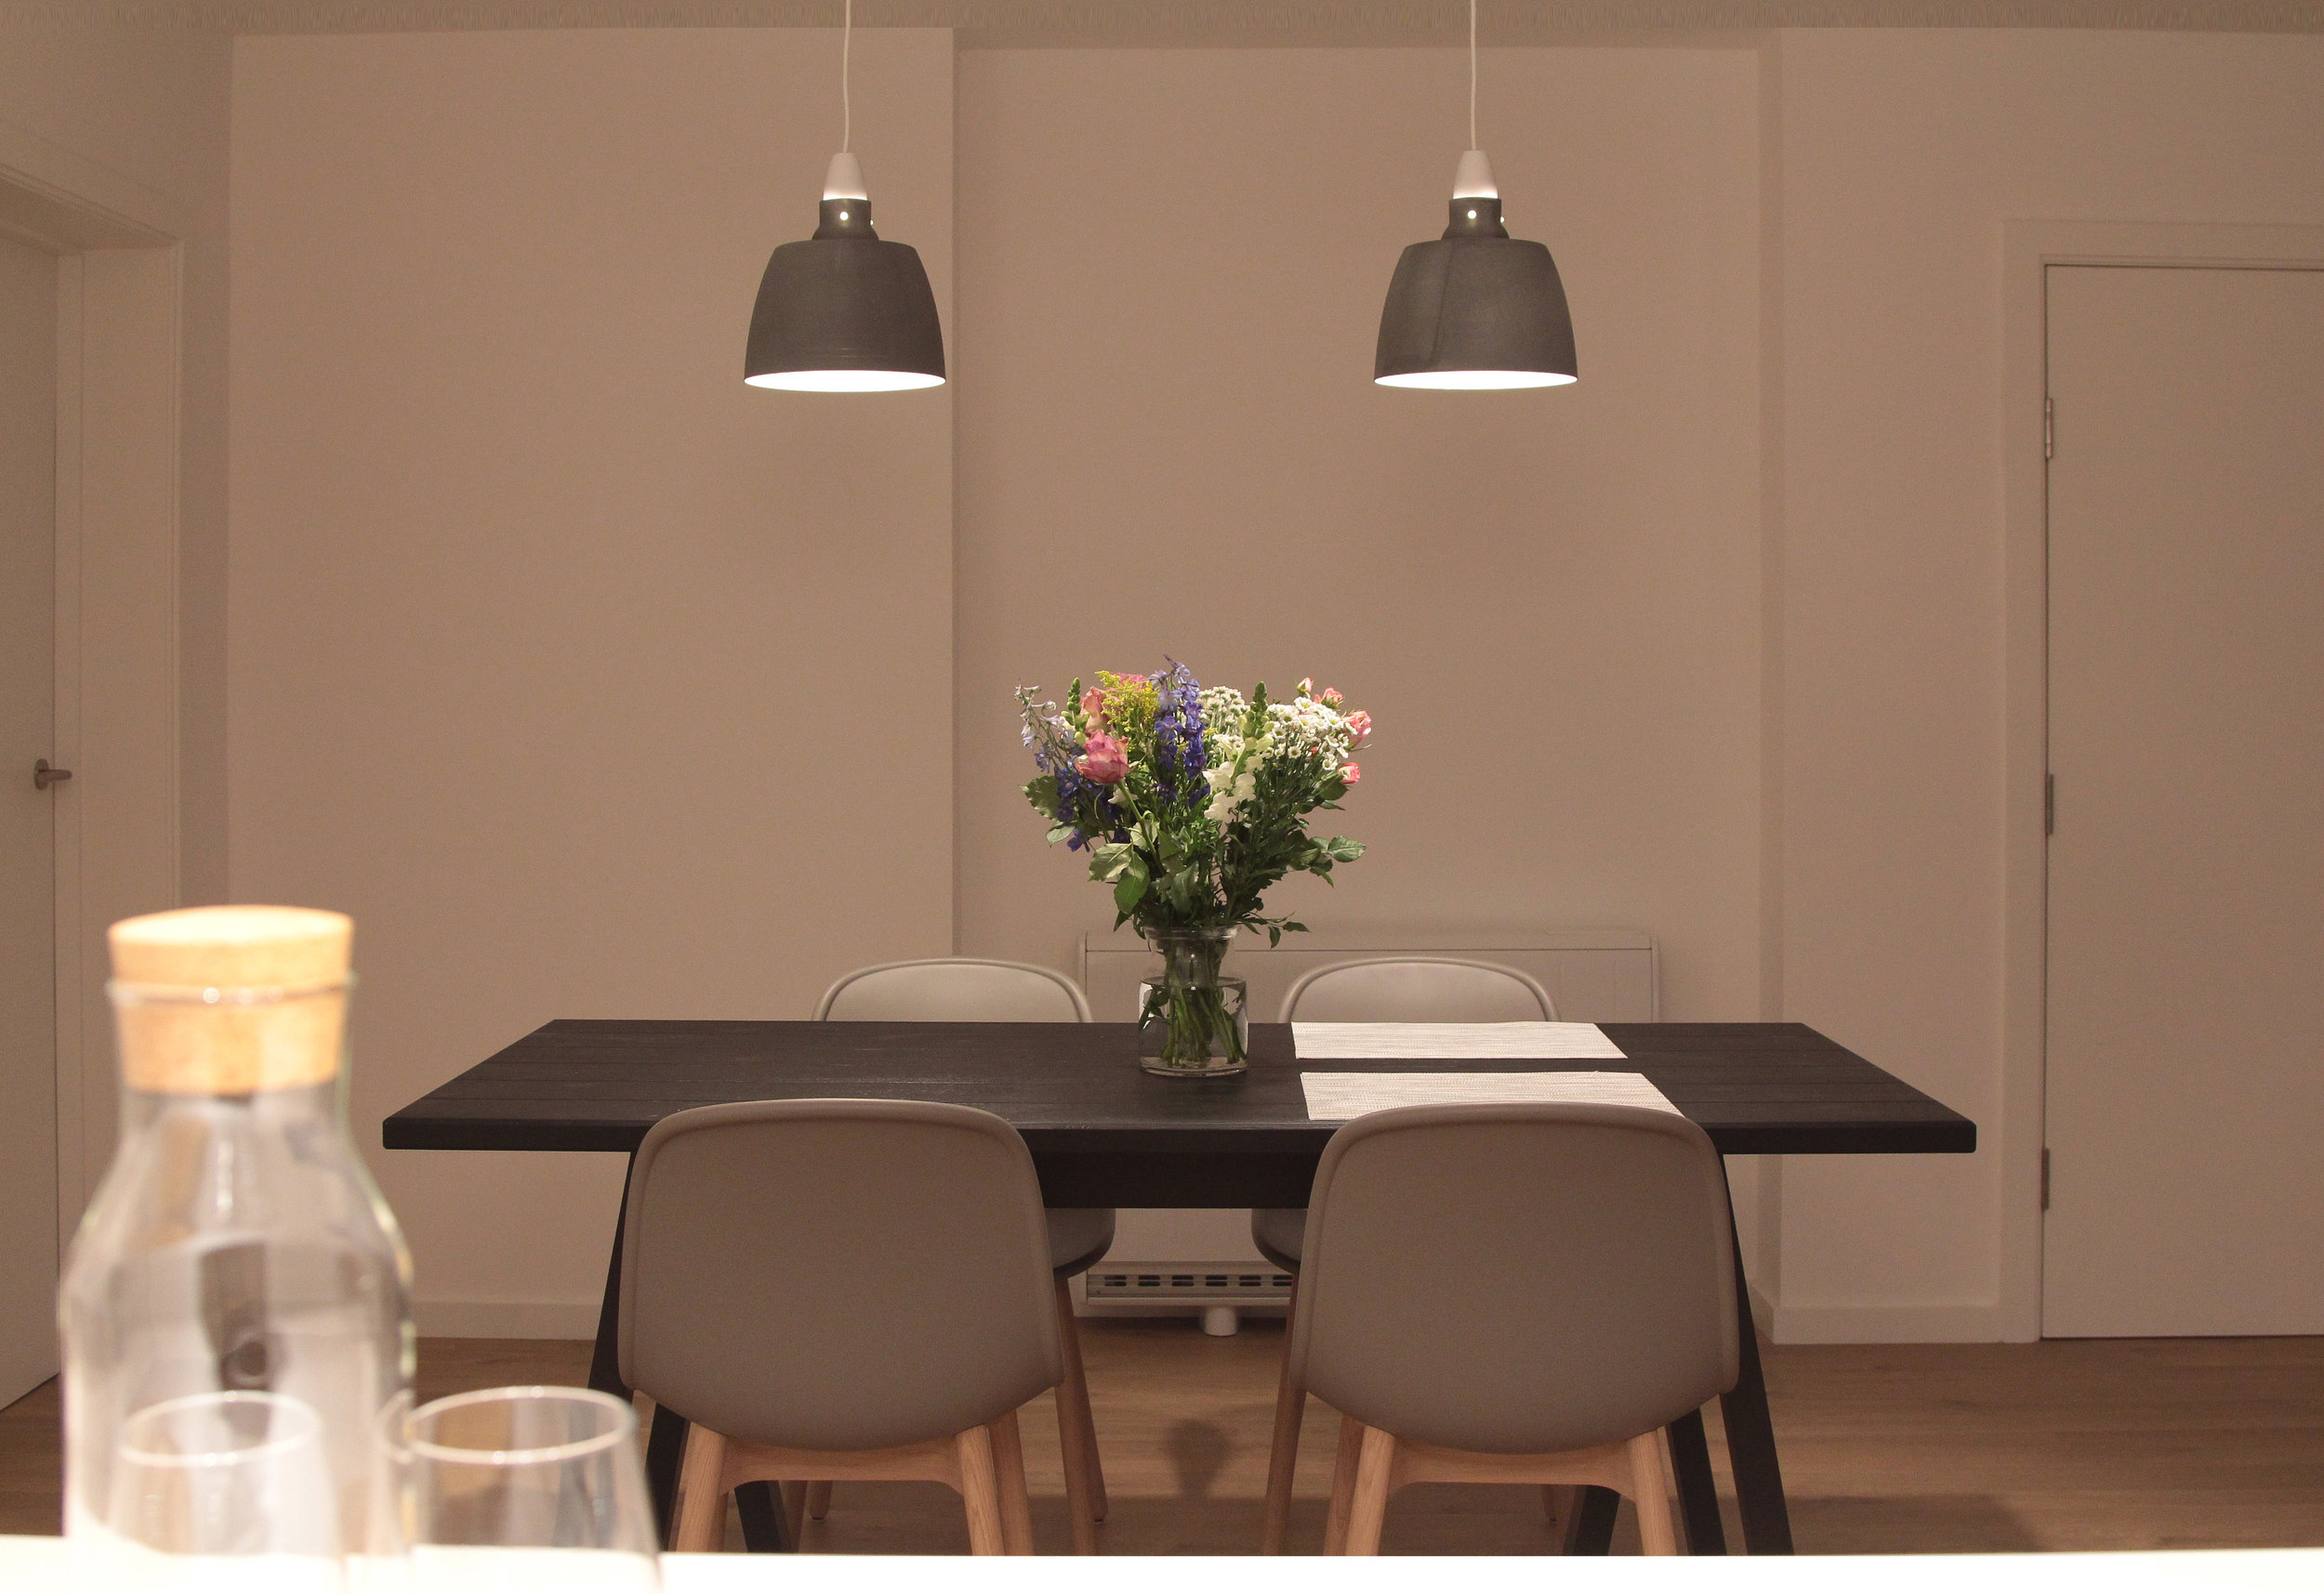 BreakPoint 'Marram' img17 - Evening View of dining area.jpg